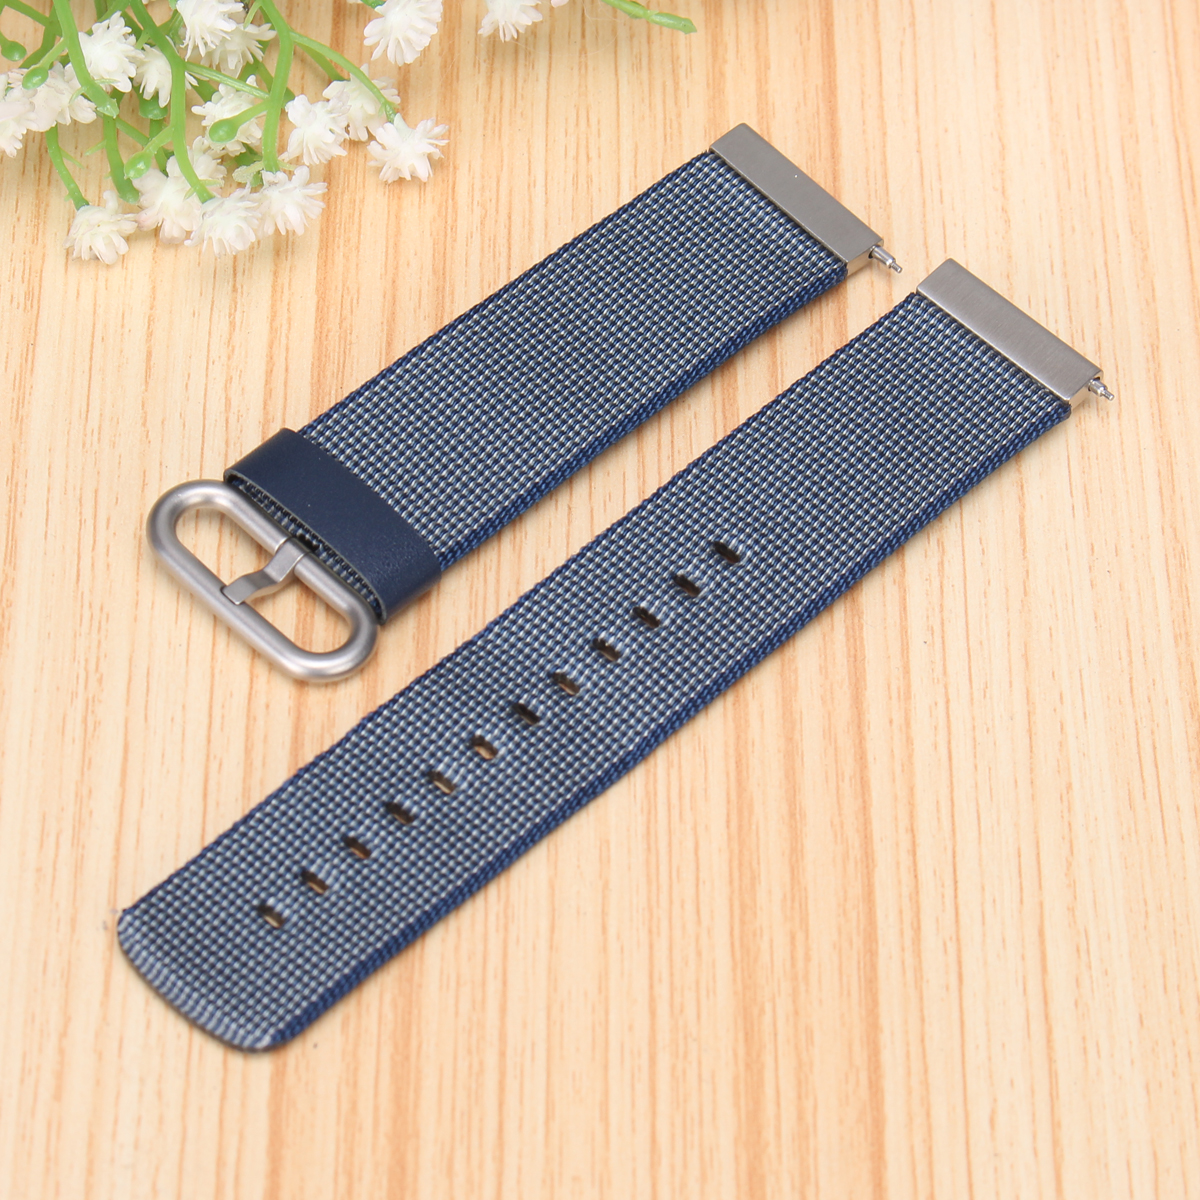 Colorful Nylon Loop Watch Band Strap Replacement for Fitbit Versa Breathable Fabric